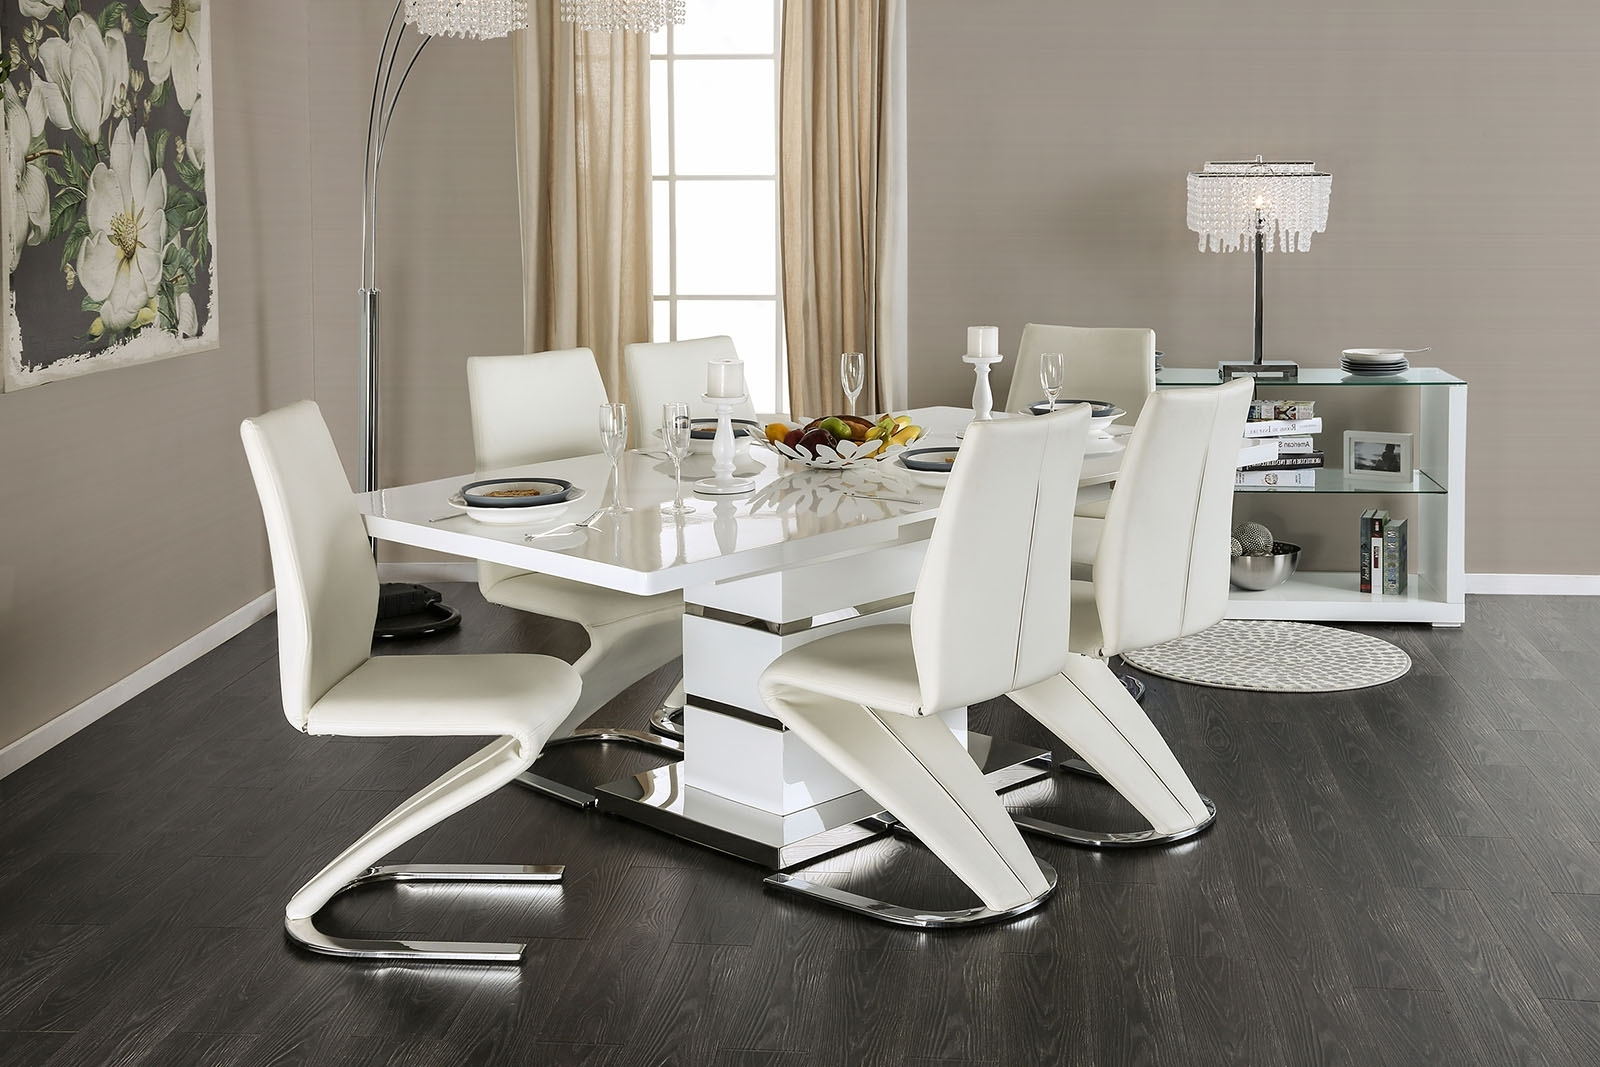 Widely Used White High Gloss Dining Chairs For Midvale Contemporary Style White High Gloss Lacquer Finish & Chrome (View 25 of 25)